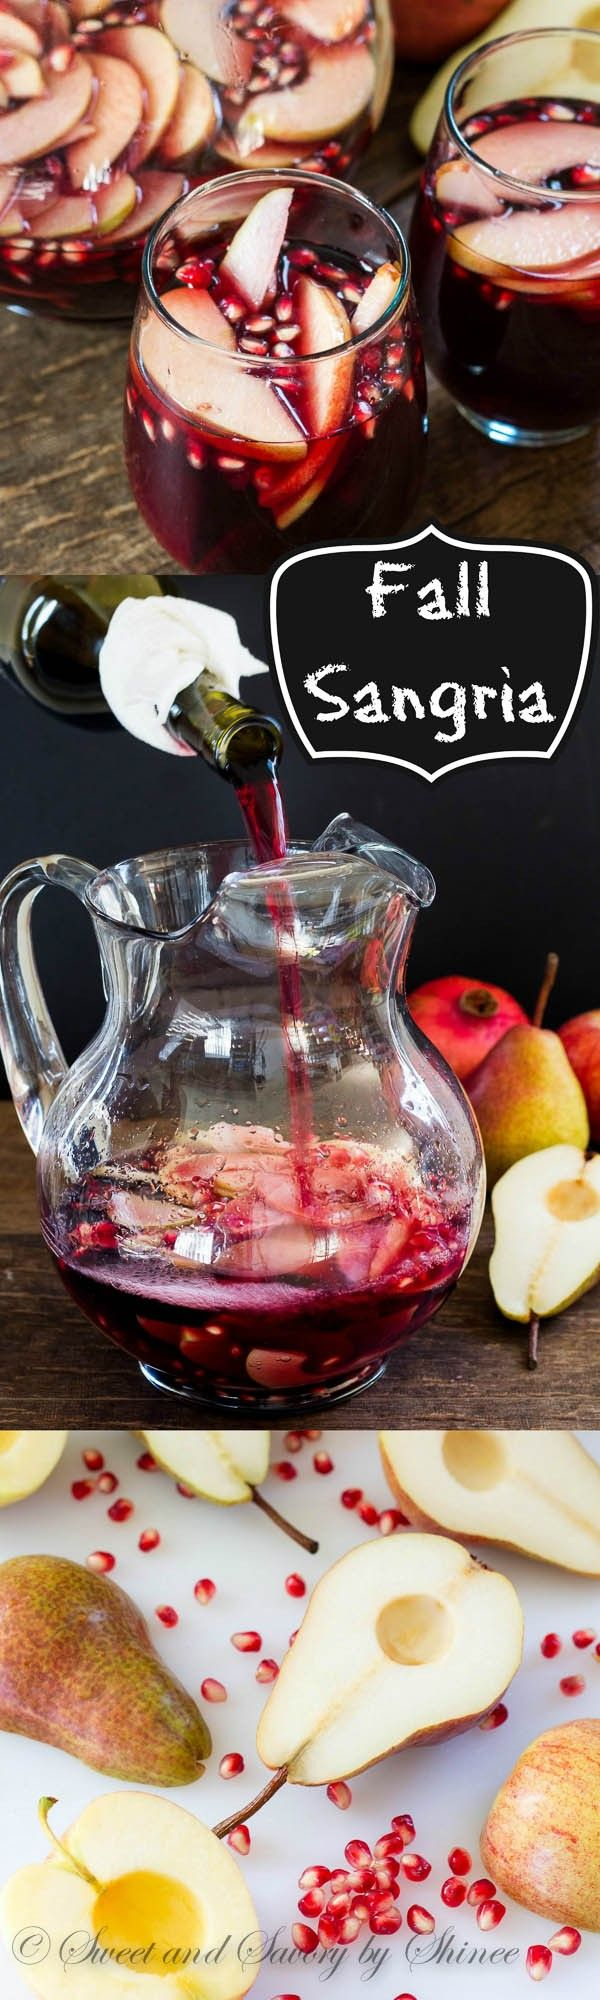 My fall sangria, filled with apples, pears and pomegranates, is absolutely delicious drink you can enjoy this wonderful autumn weekend!